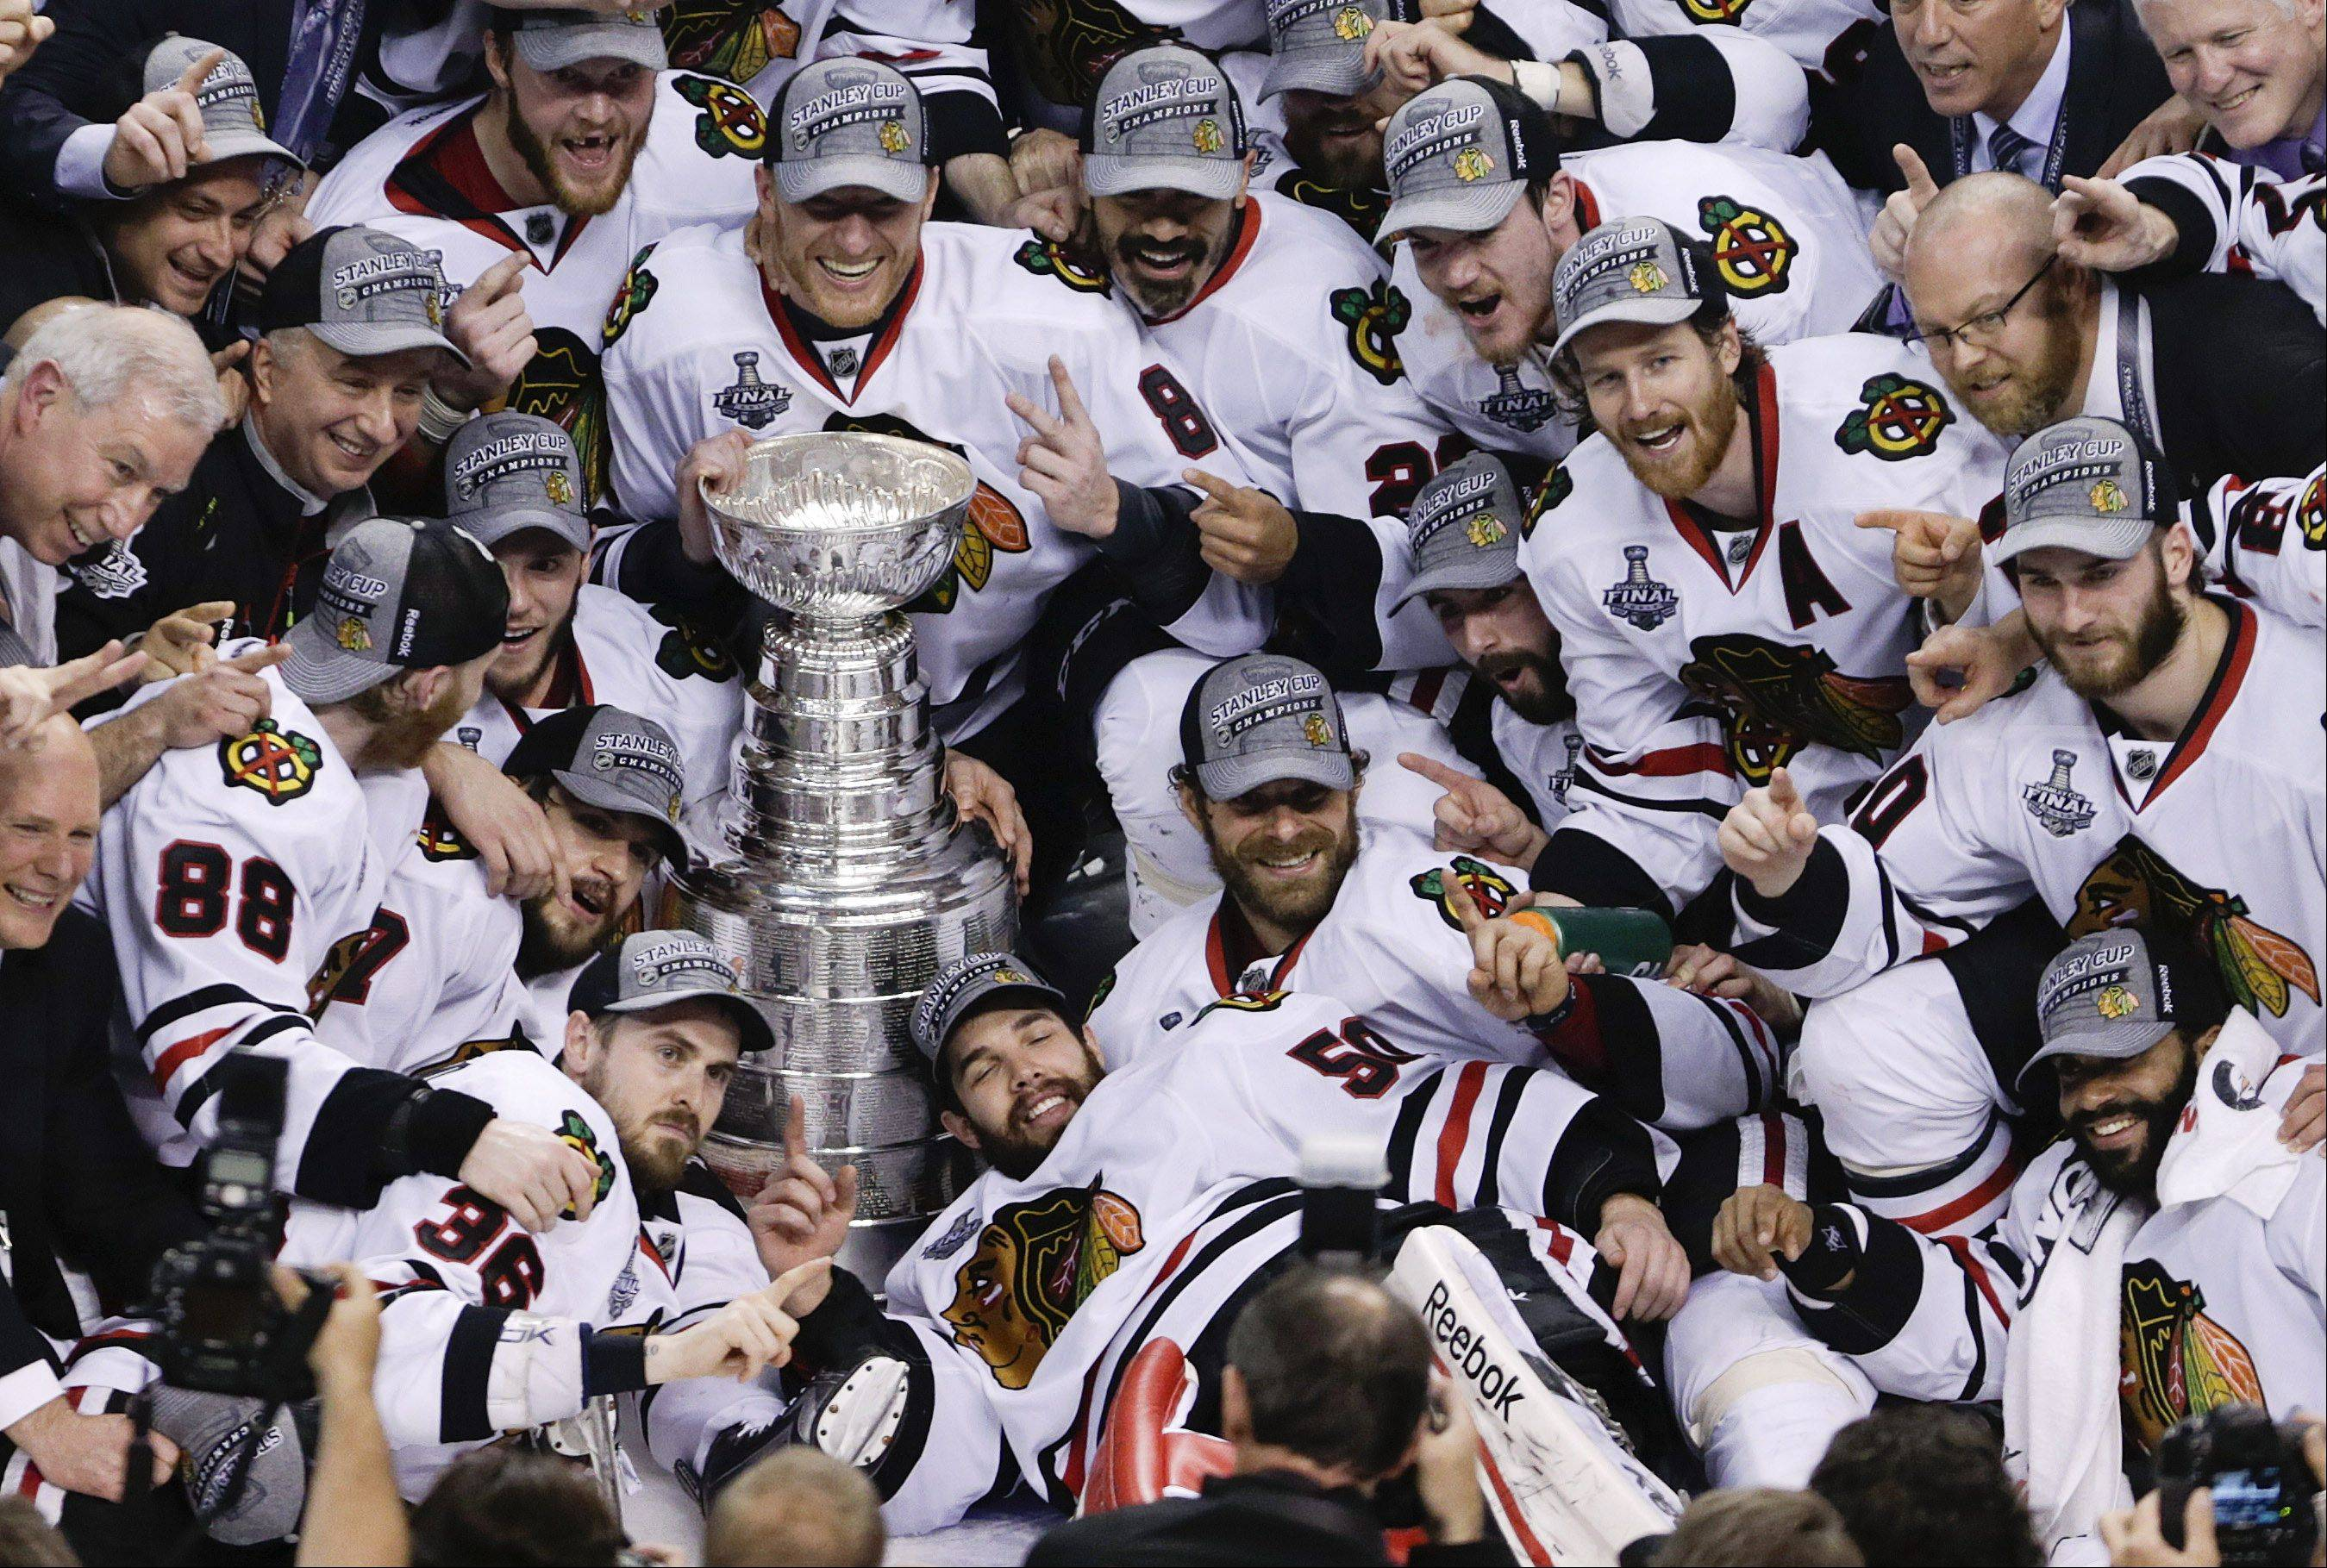 The Blackhawks pose with the Stanley Cup after beating the Boston Bruins 3-2 in Game 6 of the NHL hockey Stanley Cup Finals, Monday, June 24, 2013, in Boston.